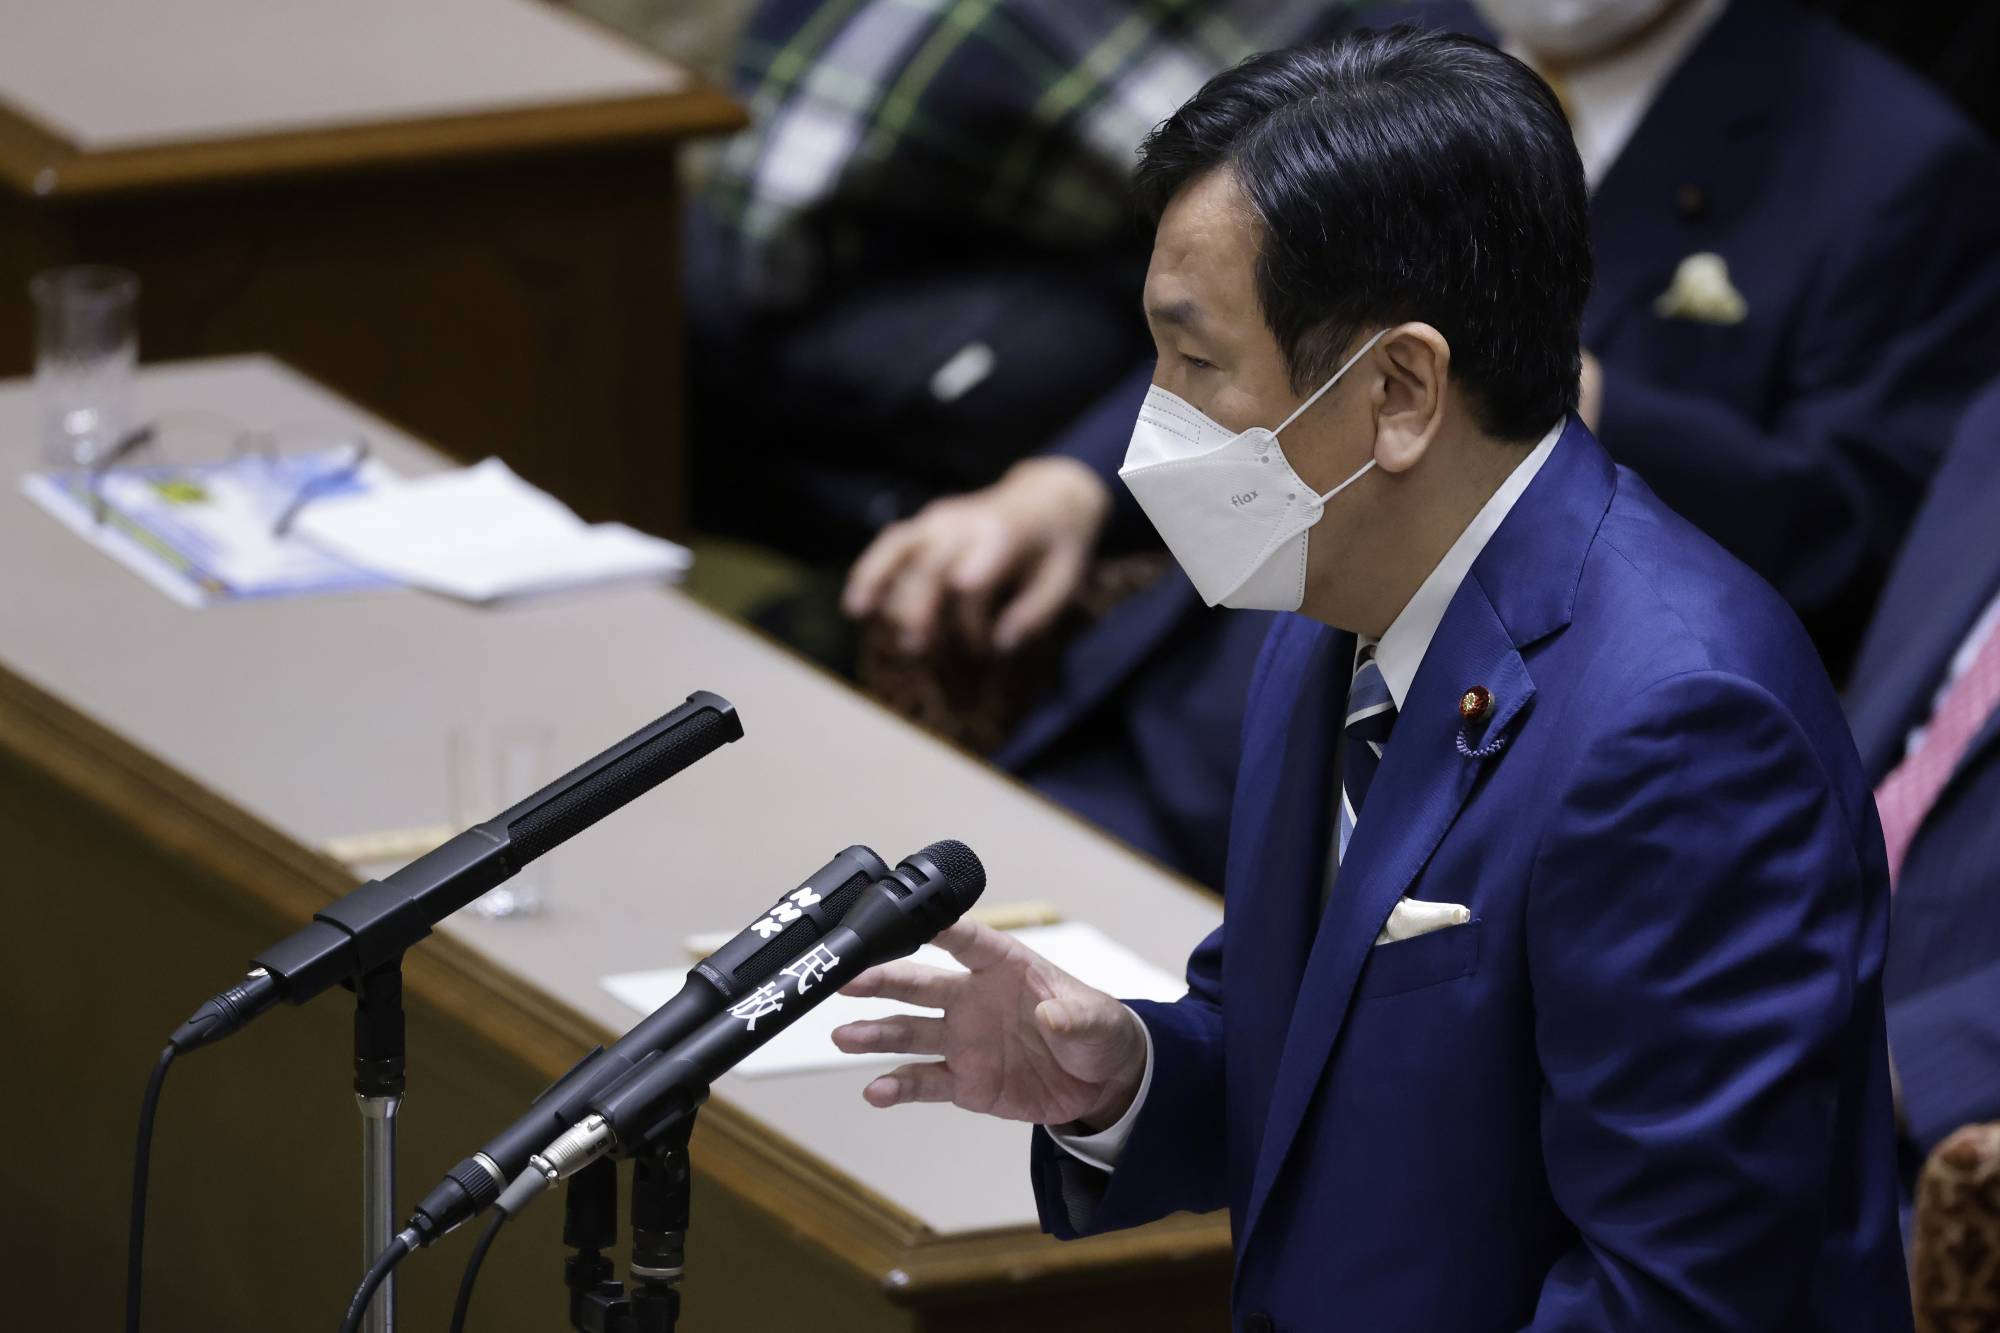 Constitutional Democratic Party of Japan leader Yukio Edano put effort into counterproposals regarding the government's COVID-19 response and amendments to the national referendum law during this Diet session. | BLOOMBERG